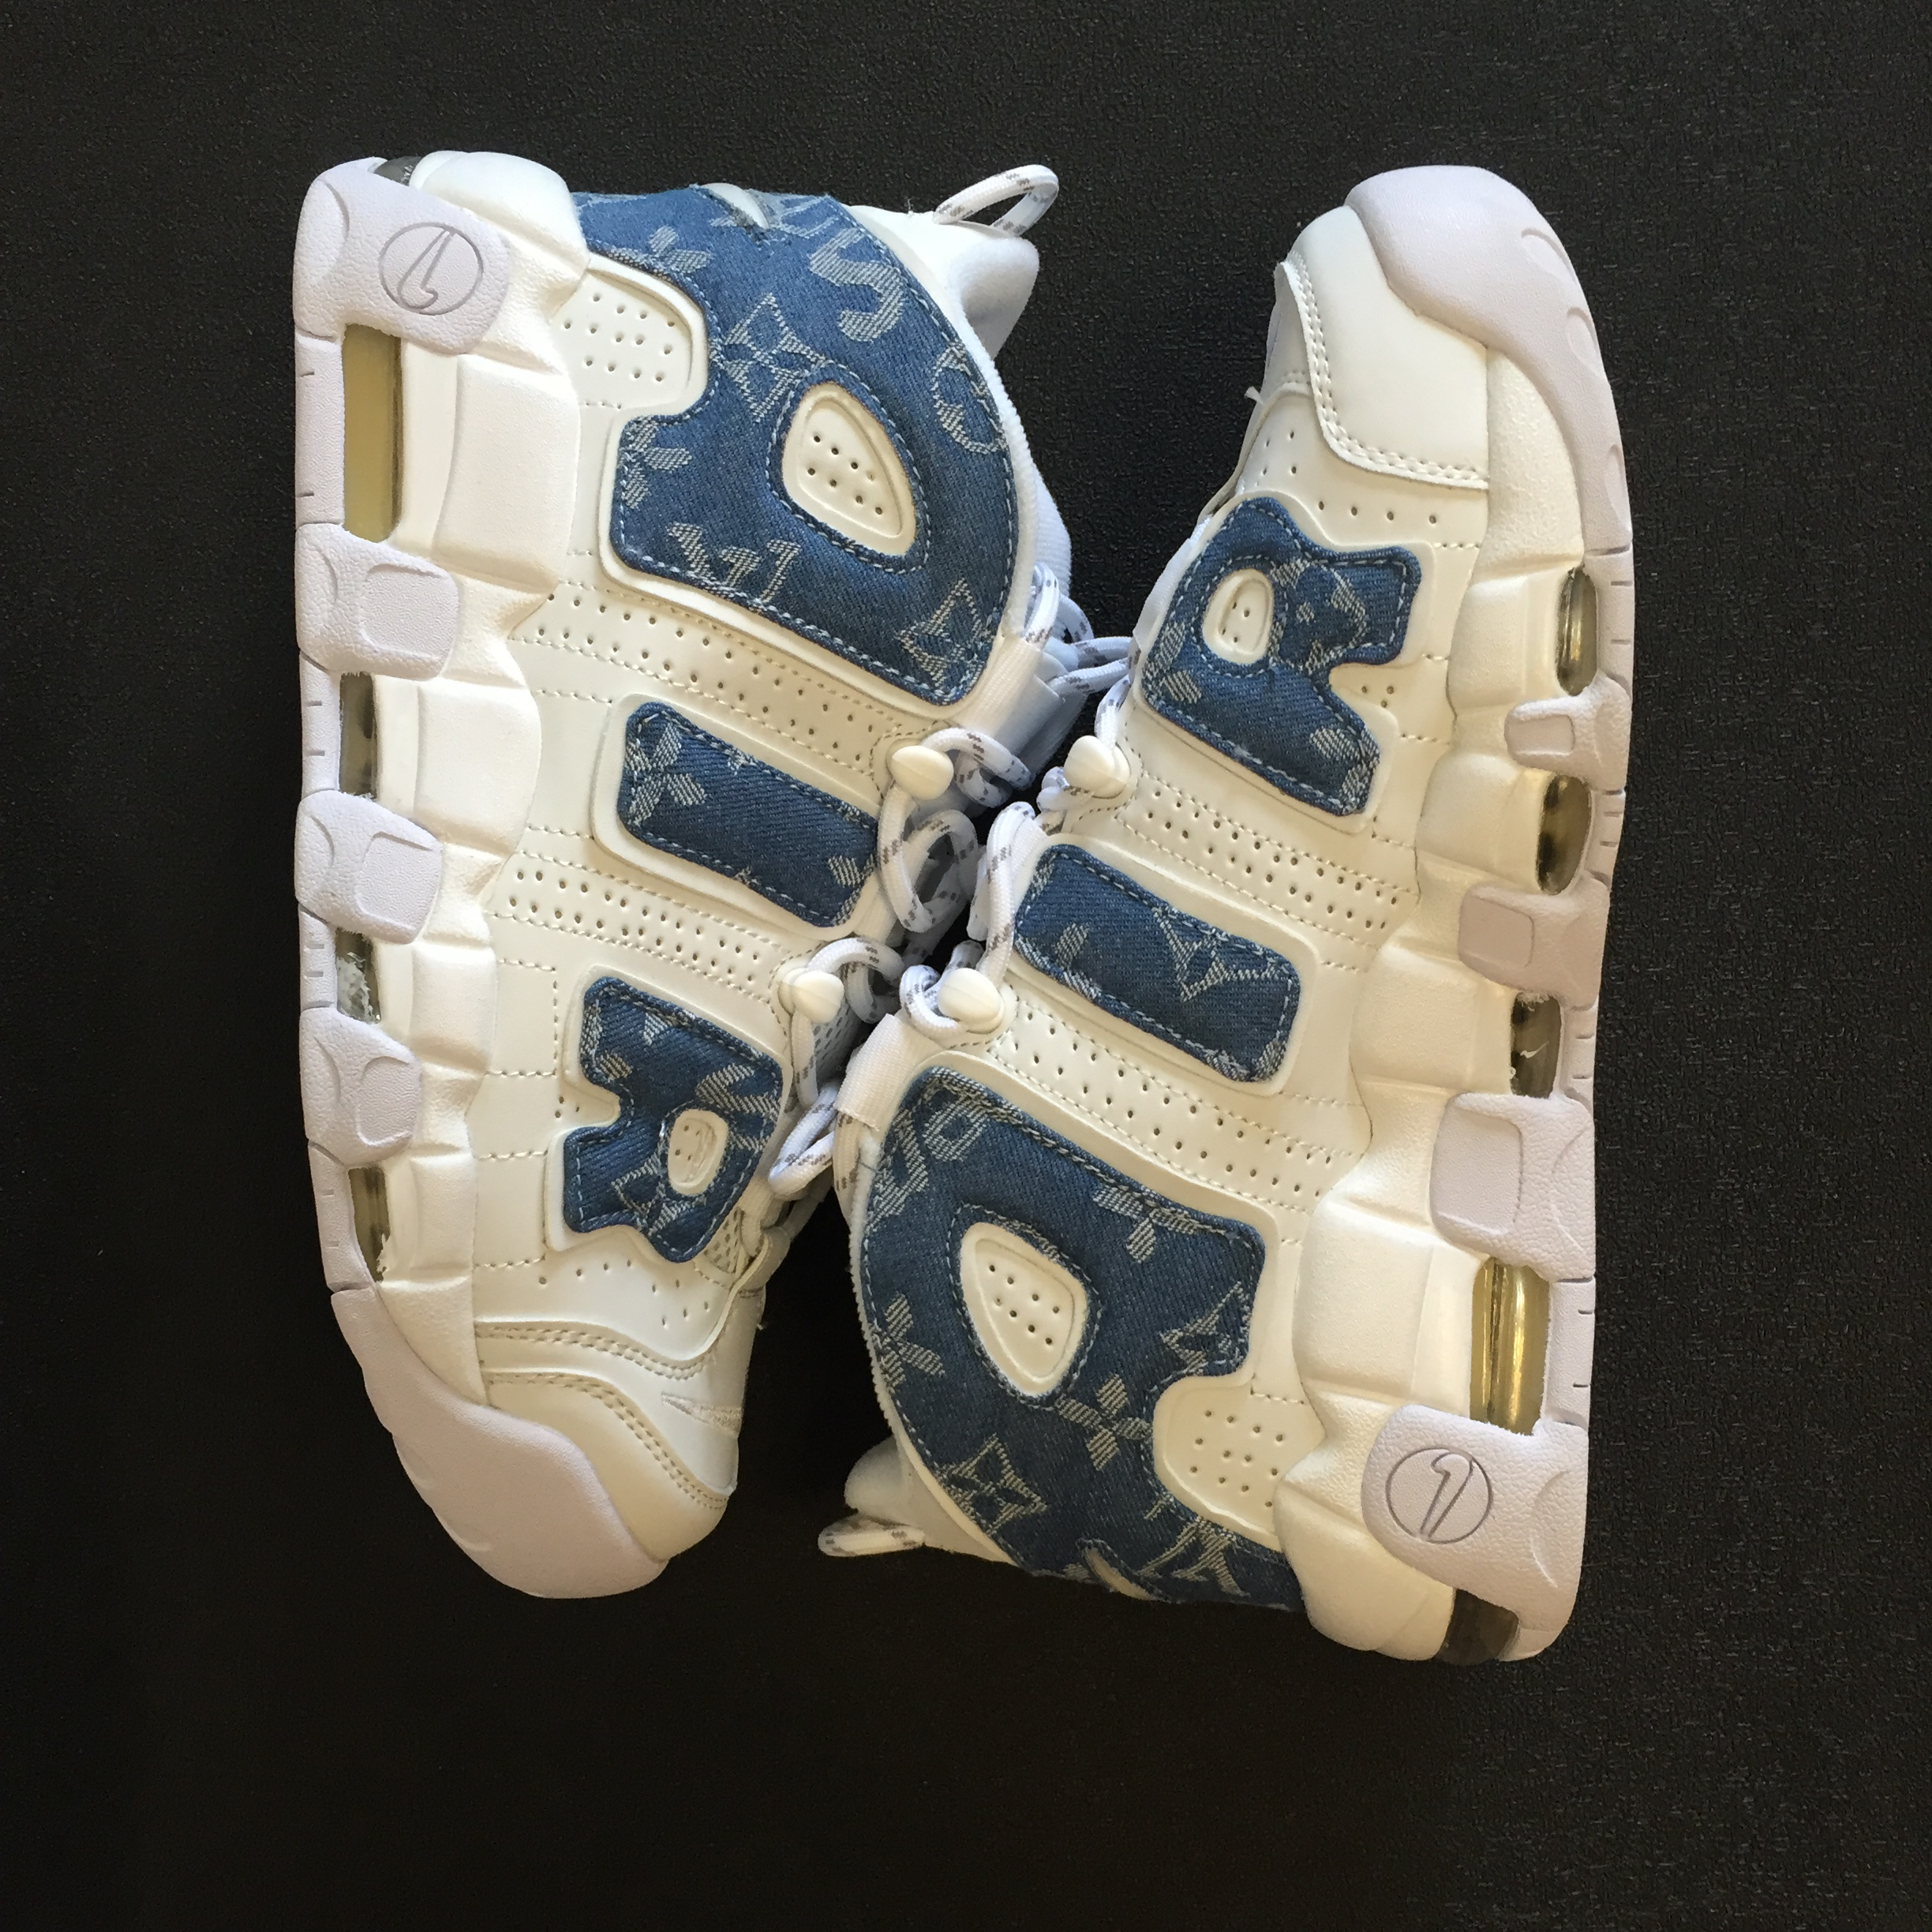 2017 Men Louis vuitton x Supreme x Nike Air More Uptempo White Blue Shoes